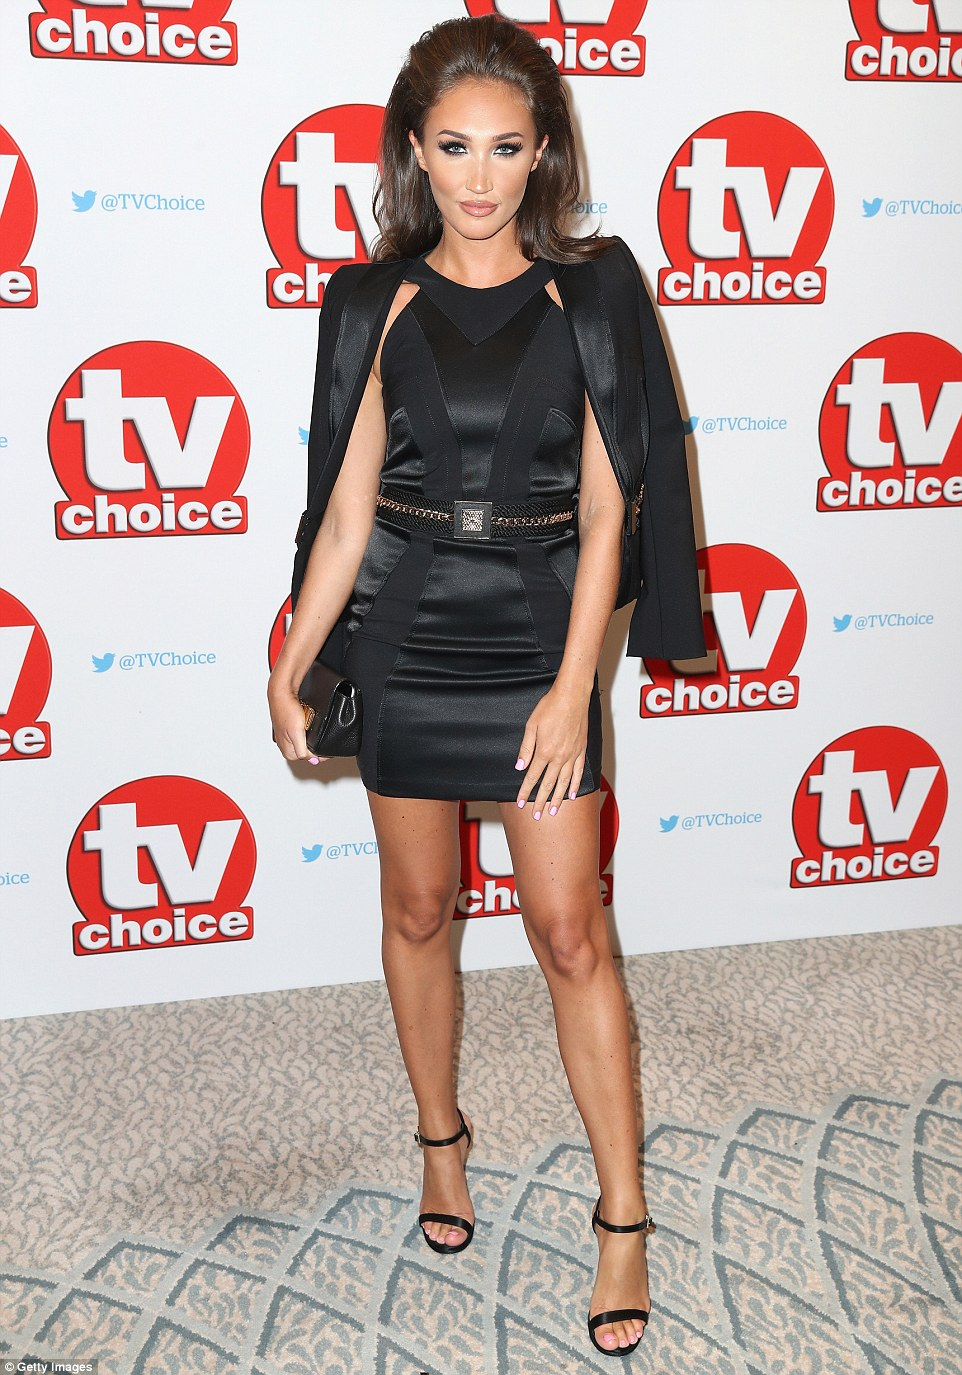 Back in black: Show newcomer Megan went for a vampy black mini dress which she teamed with towering heels and a tuxedo jacket